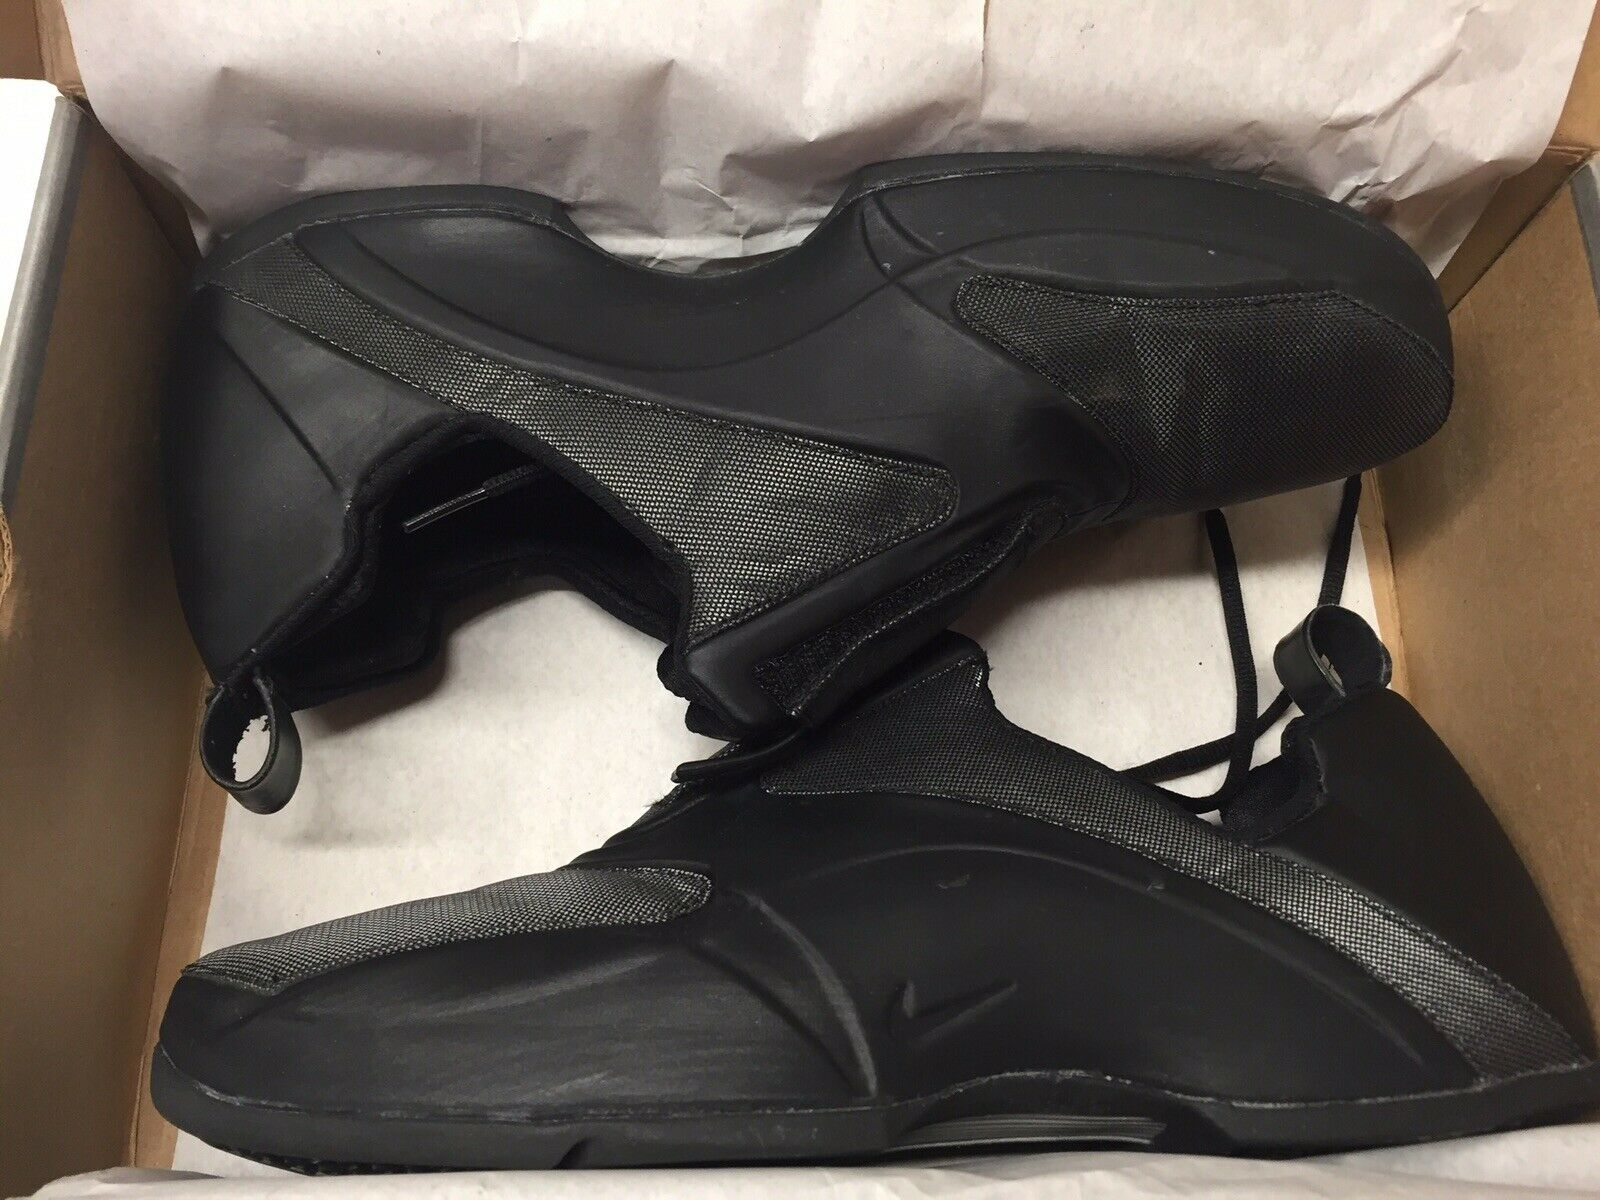 NEW OG Nike Air Trainerposite Foamposite size 11.5 Men's shoes Deadstock